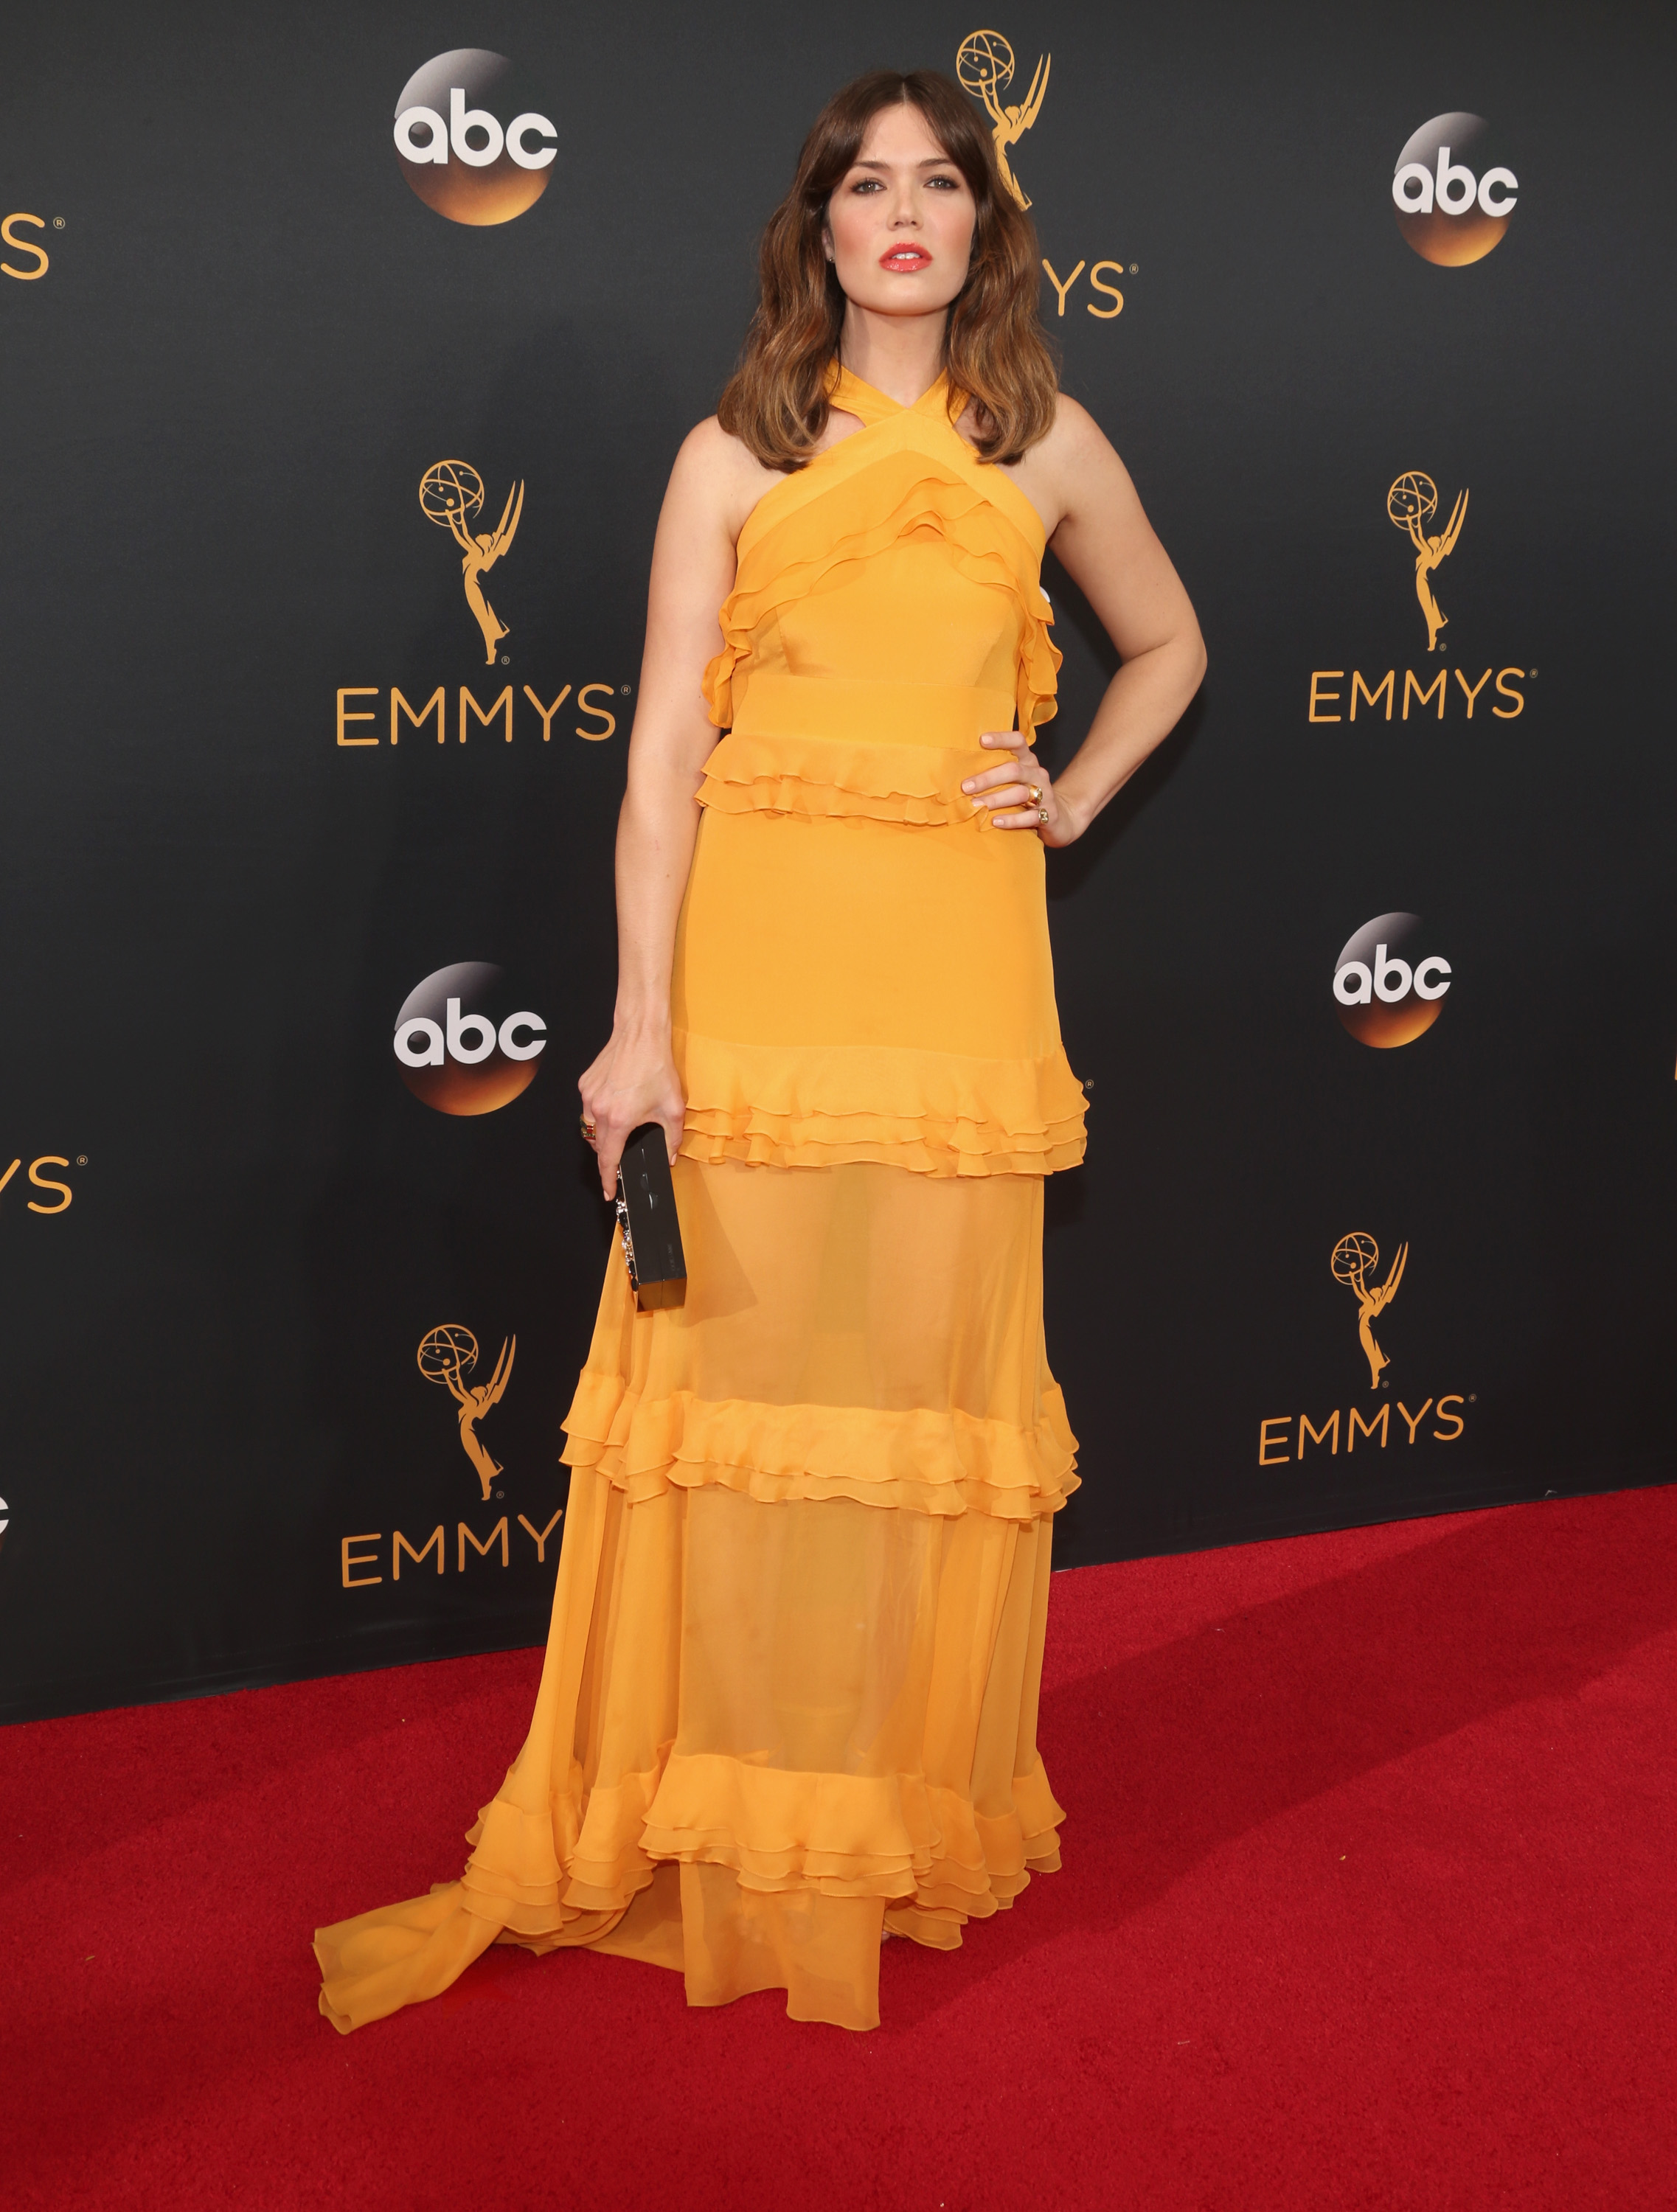 Mandy Moore arrives at the 68th Annual Primetime Emmy Awards at Microsoft Theater on Sept. 18, 2016 in Los Angeles.